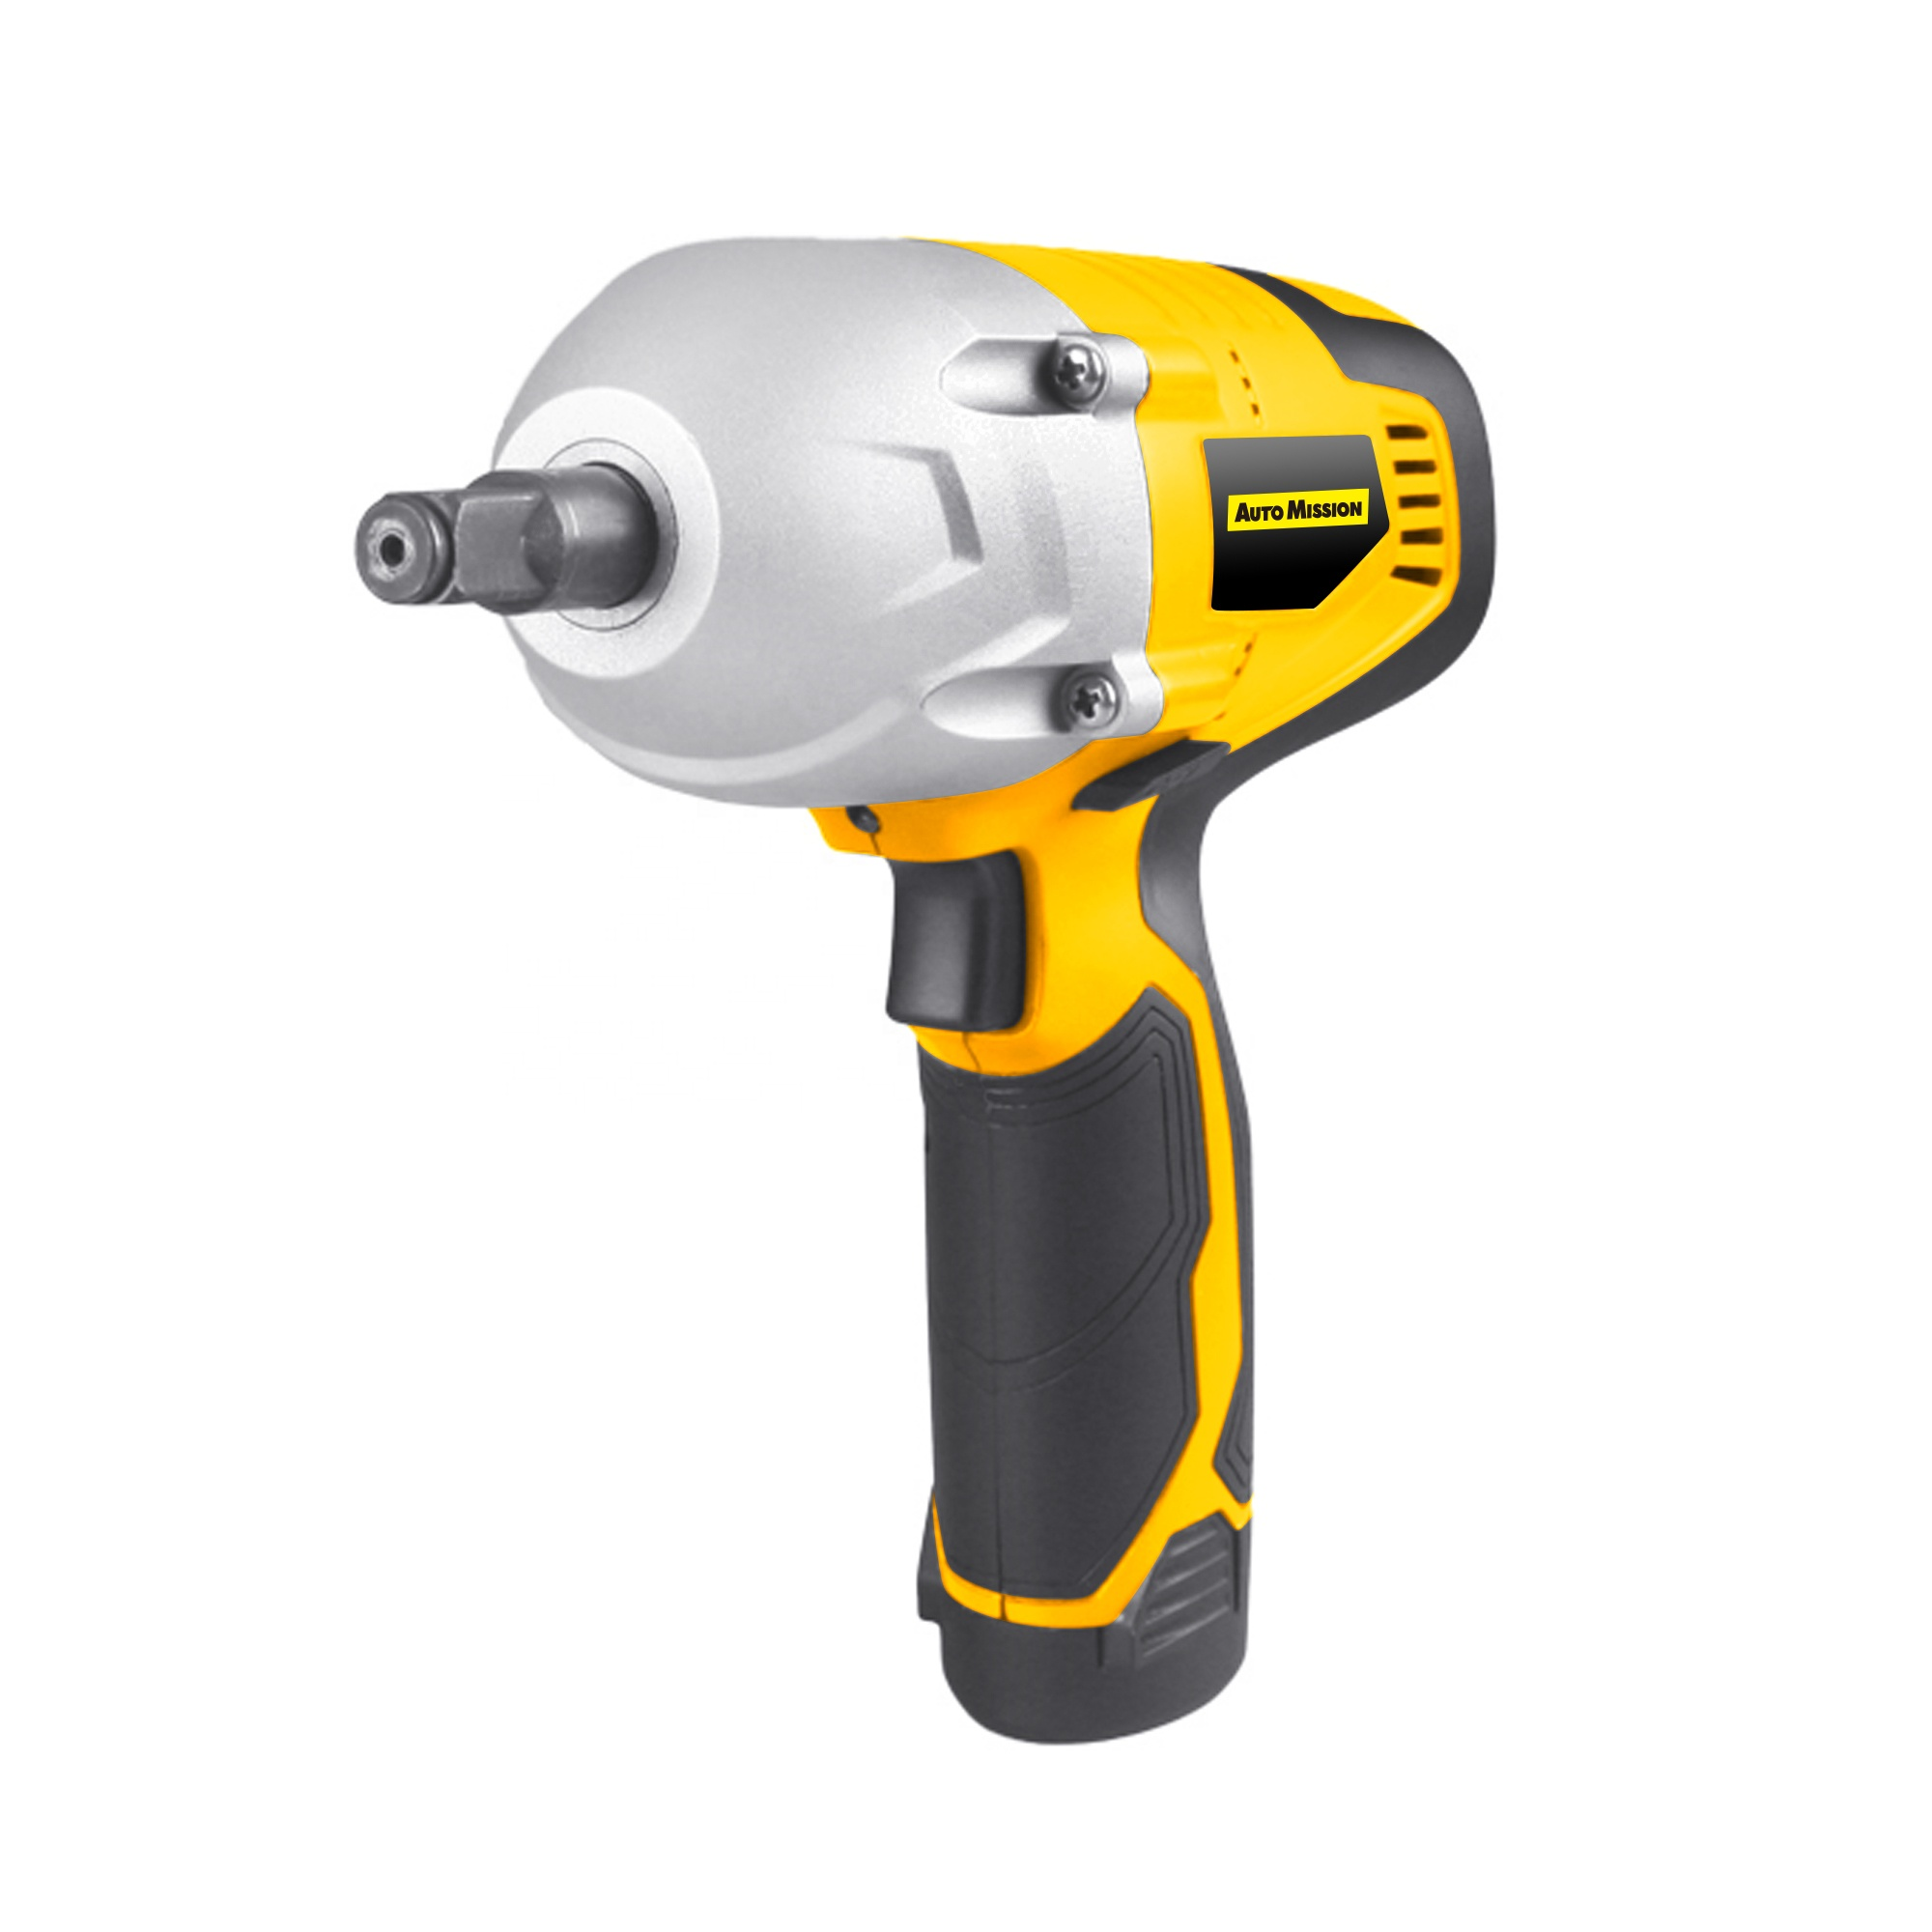 Portable 12V Li-ion <strong>Battery</strong> 400N.m High Torque Powerful Cordless Electric Car Impact Wrench